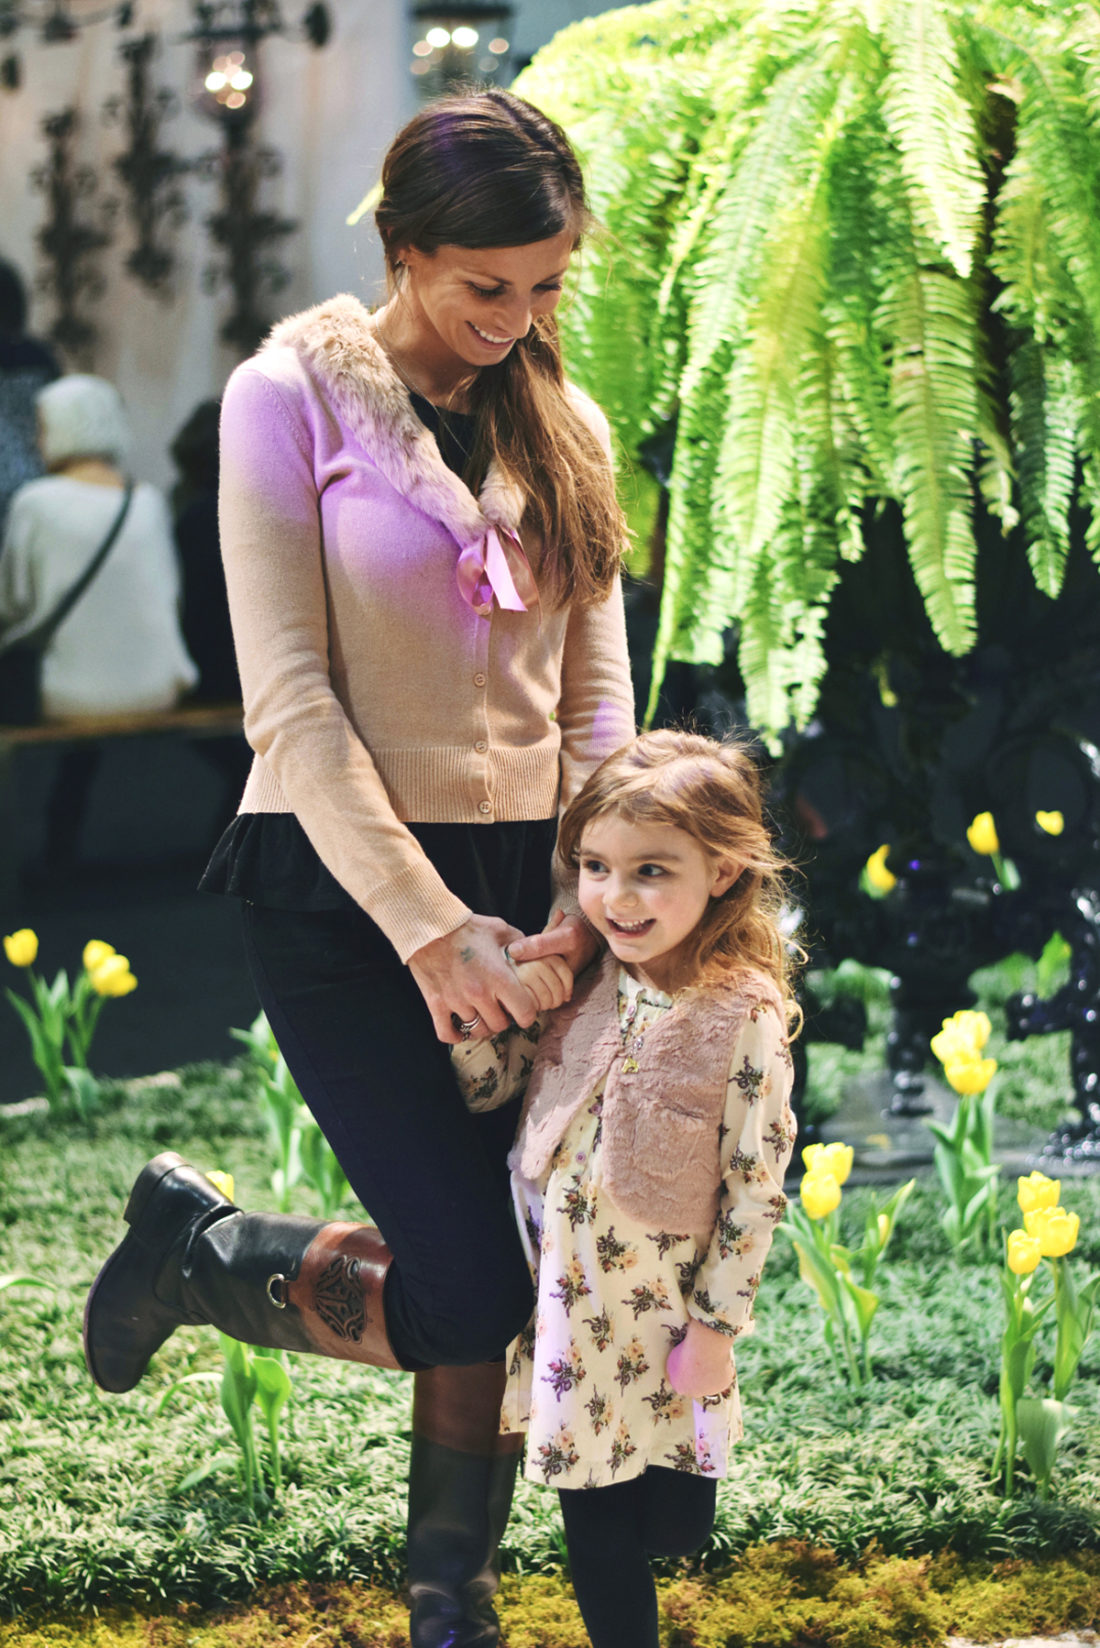 nashville antiques and garden show with my best ladies and tiniest man!